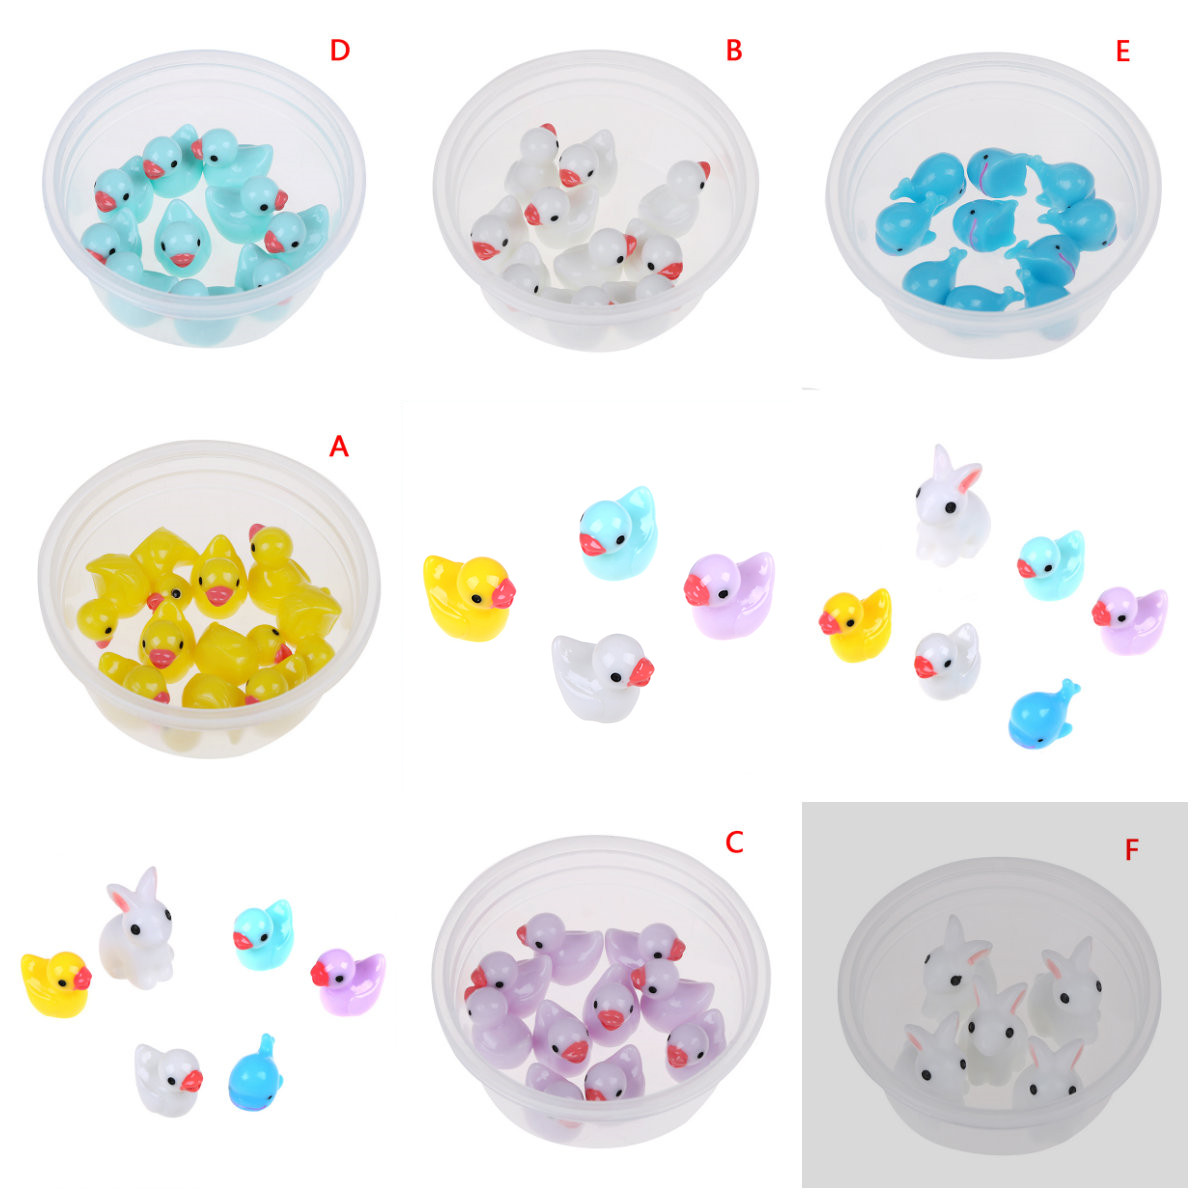 5/10pcs Fluffy Clear <font><b>Slime</b></font> DIY Toy Mini <font><b>Duck</b></font> Rabbit Fairy Garden Home Plants Decor Resin Crafts Miniature Dollhouse Gift Toys image